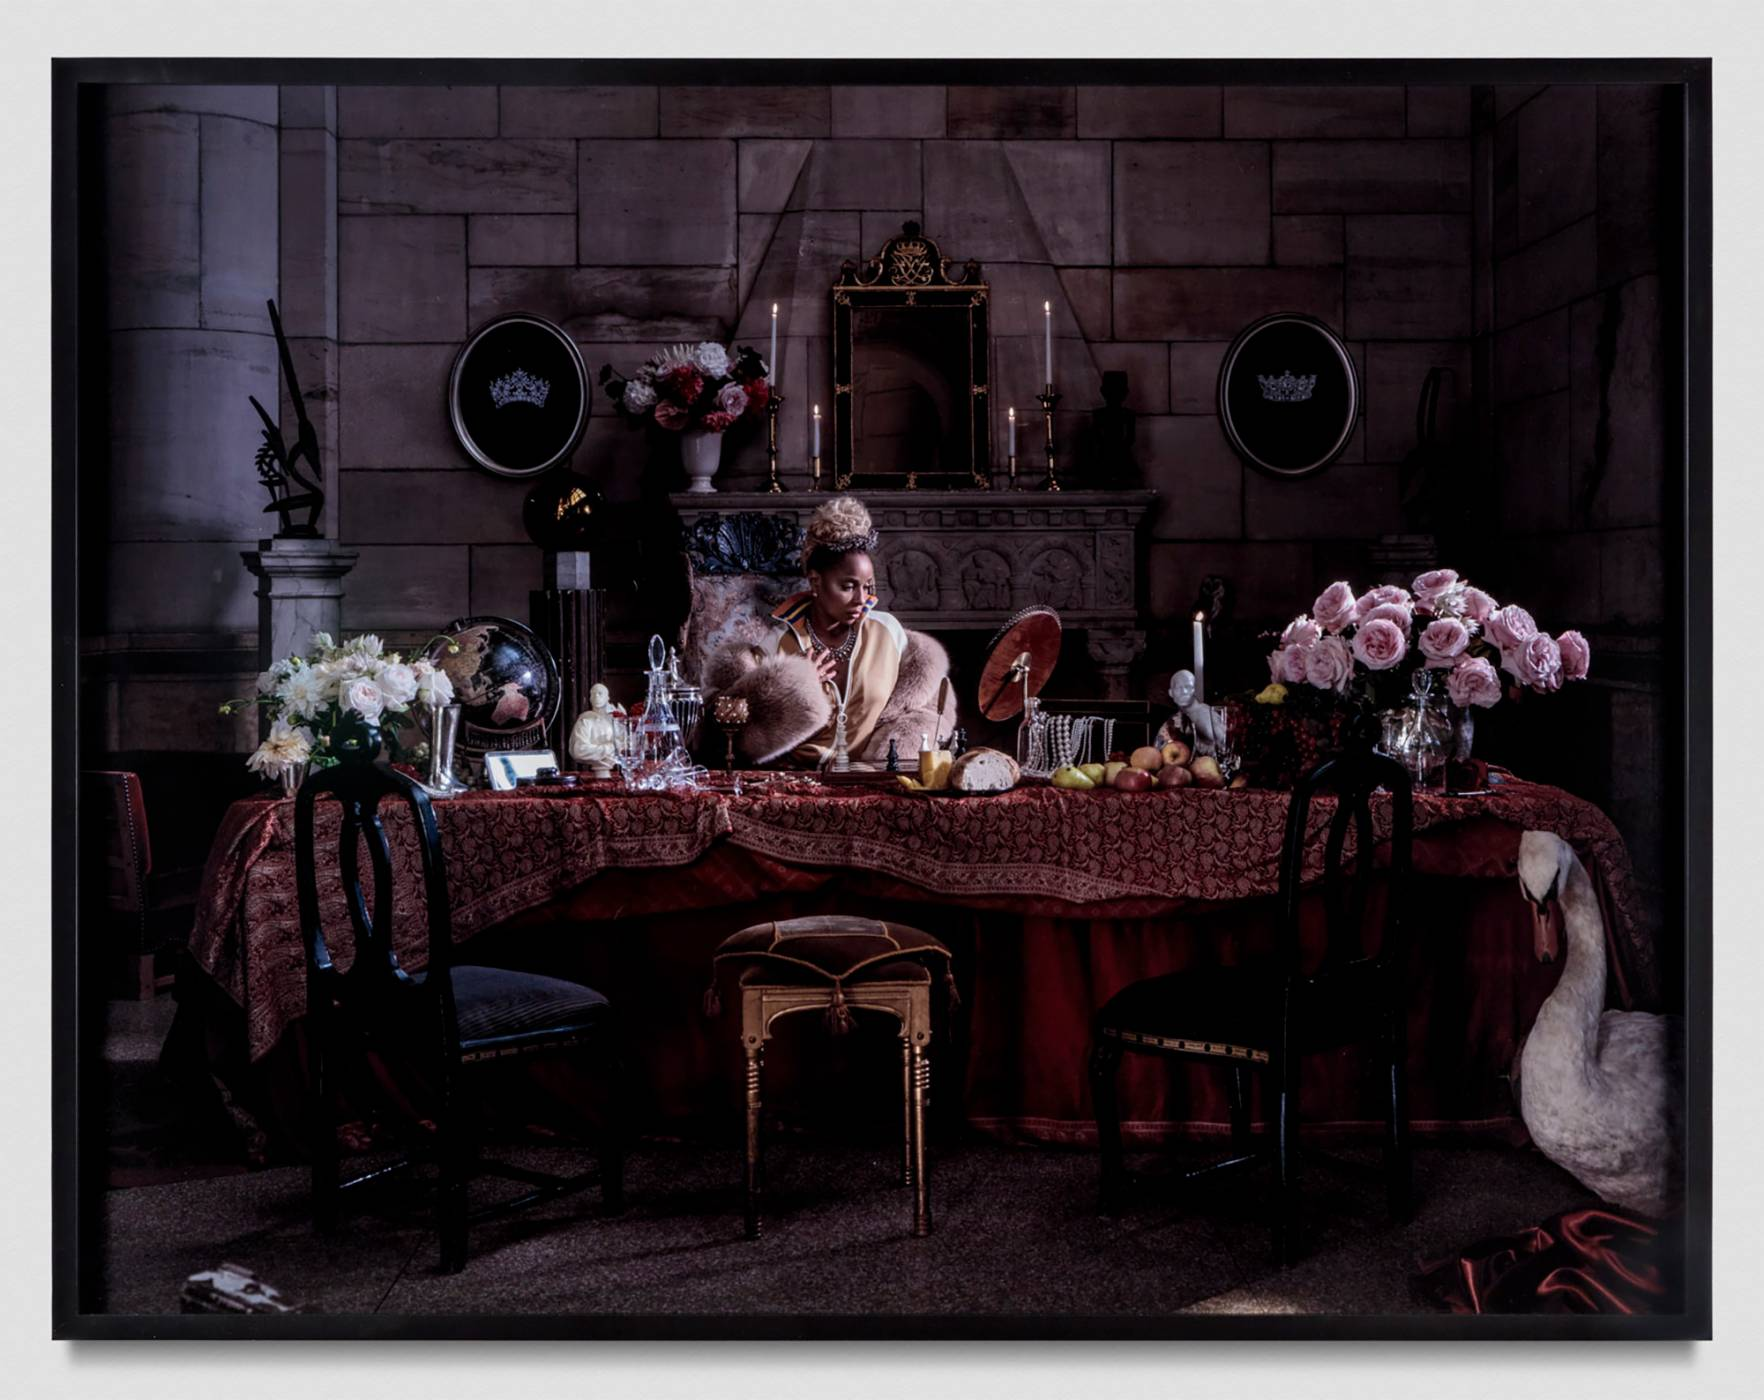 Painting with woman among luxury items and swan